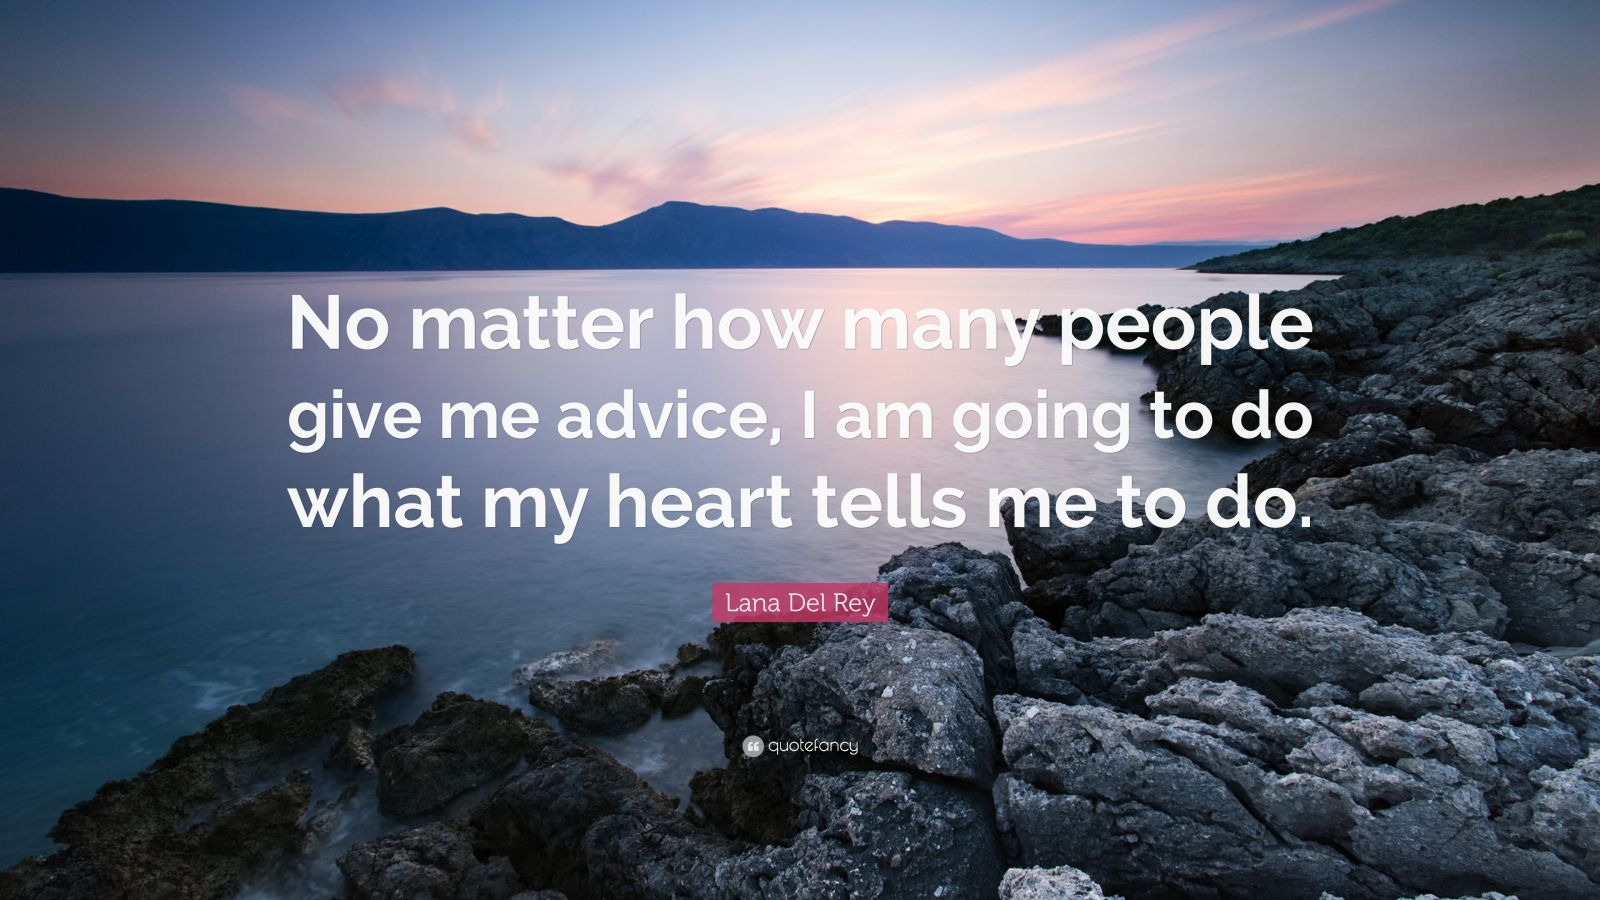 """Lana Del Rey Quote: """"No matter how many people give me advice, I am going to do what my heart tells me to do."""""""